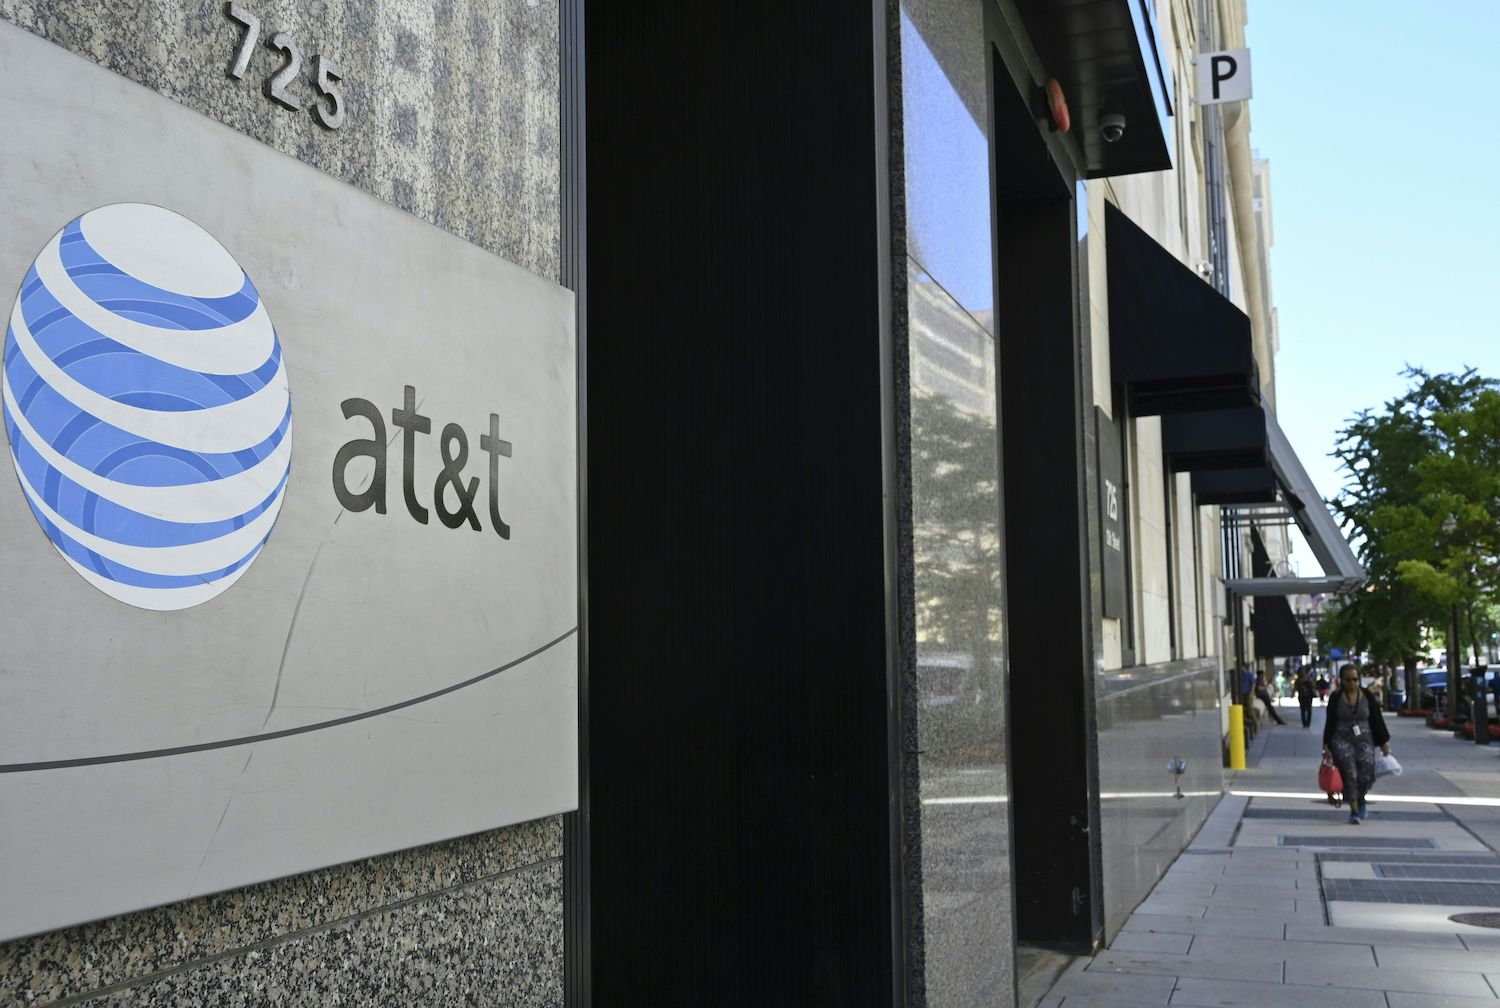 Data Broker LocationSmart Will Fight Class Action Lawsuit Over Selling AT&T Data - VICE